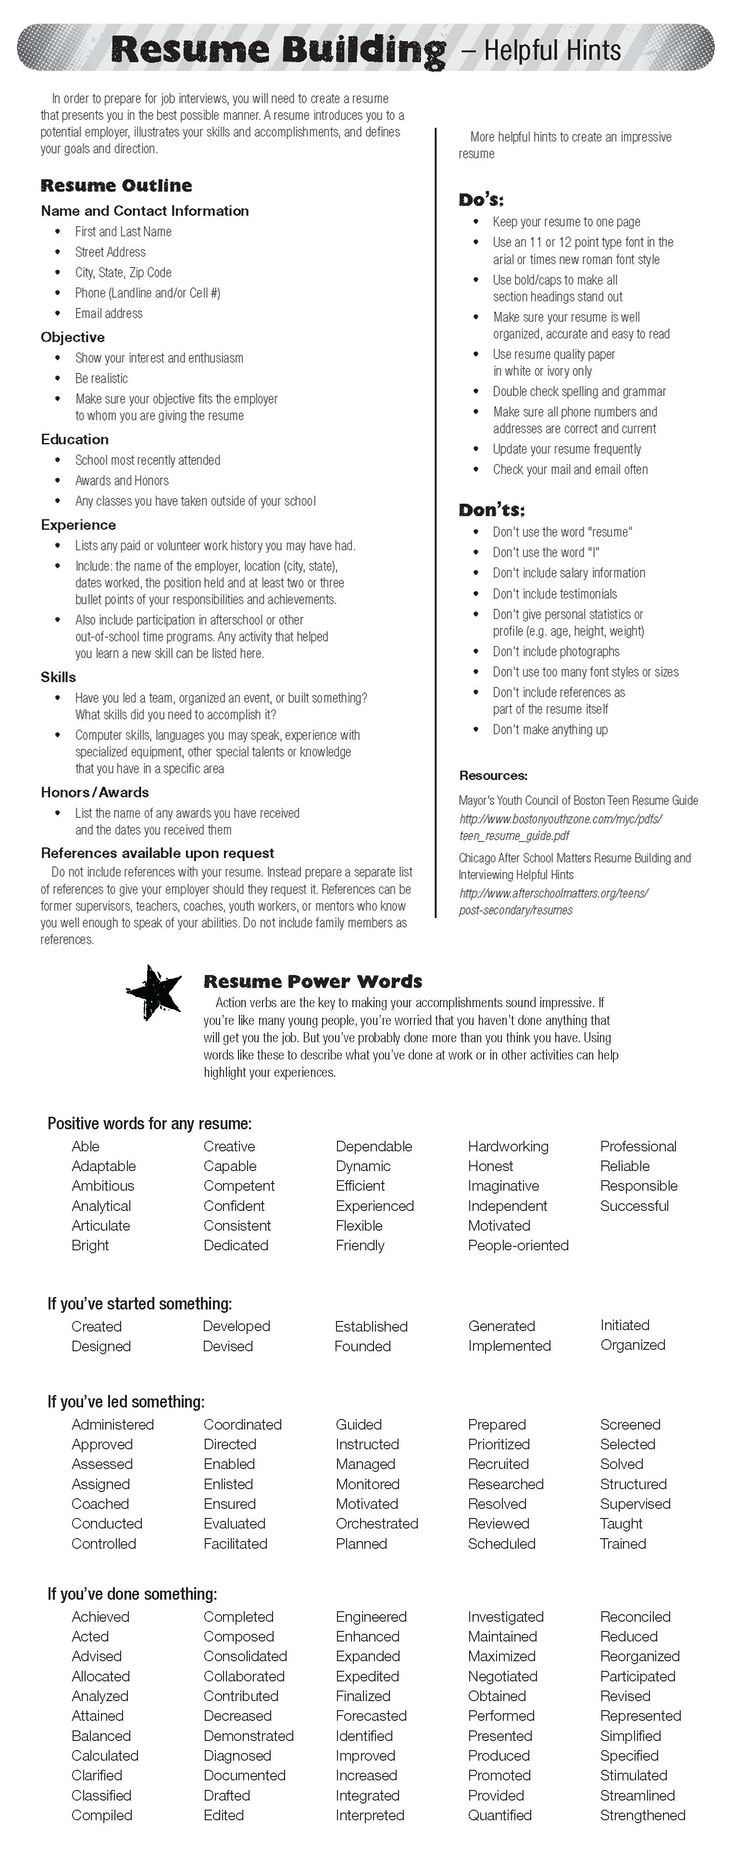 Opposenewapstandardsus  Winsome  Ideas About Resume On Pinterest  Cv Format Resume Cv And  With Lovable  Ideas About Resume On Pinterest  Cv Format Resume Cv And Resume Templates With Charming Send Resume Email Also High School Resume Template Word In Addition What Is Objective In Resume And Activities On Resume As Well As Sample Reference Page For Resume Additionally Resume Objective For High School Student From Pinterestcom With Opposenewapstandardsus  Lovable  Ideas About Resume On Pinterest  Cv Format Resume Cv And  With Charming  Ideas About Resume On Pinterest  Cv Format Resume Cv And Resume Templates And Winsome Send Resume Email Also High School Resume Template Word In Addition What Is Objective In Resume From Pinterestcom